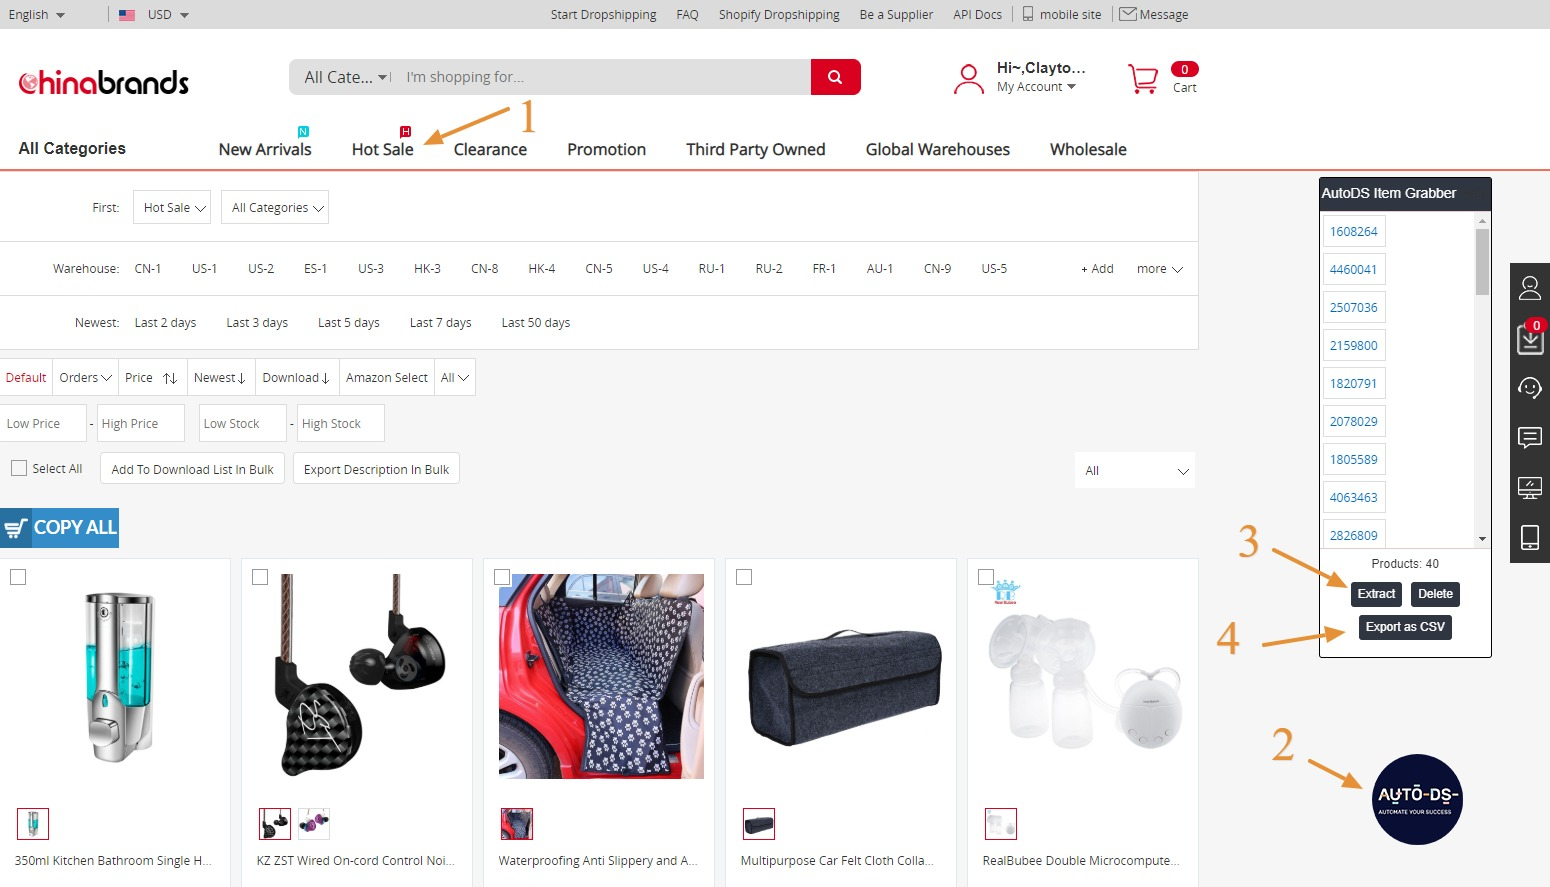 How to find products to dropship from Chinabrands